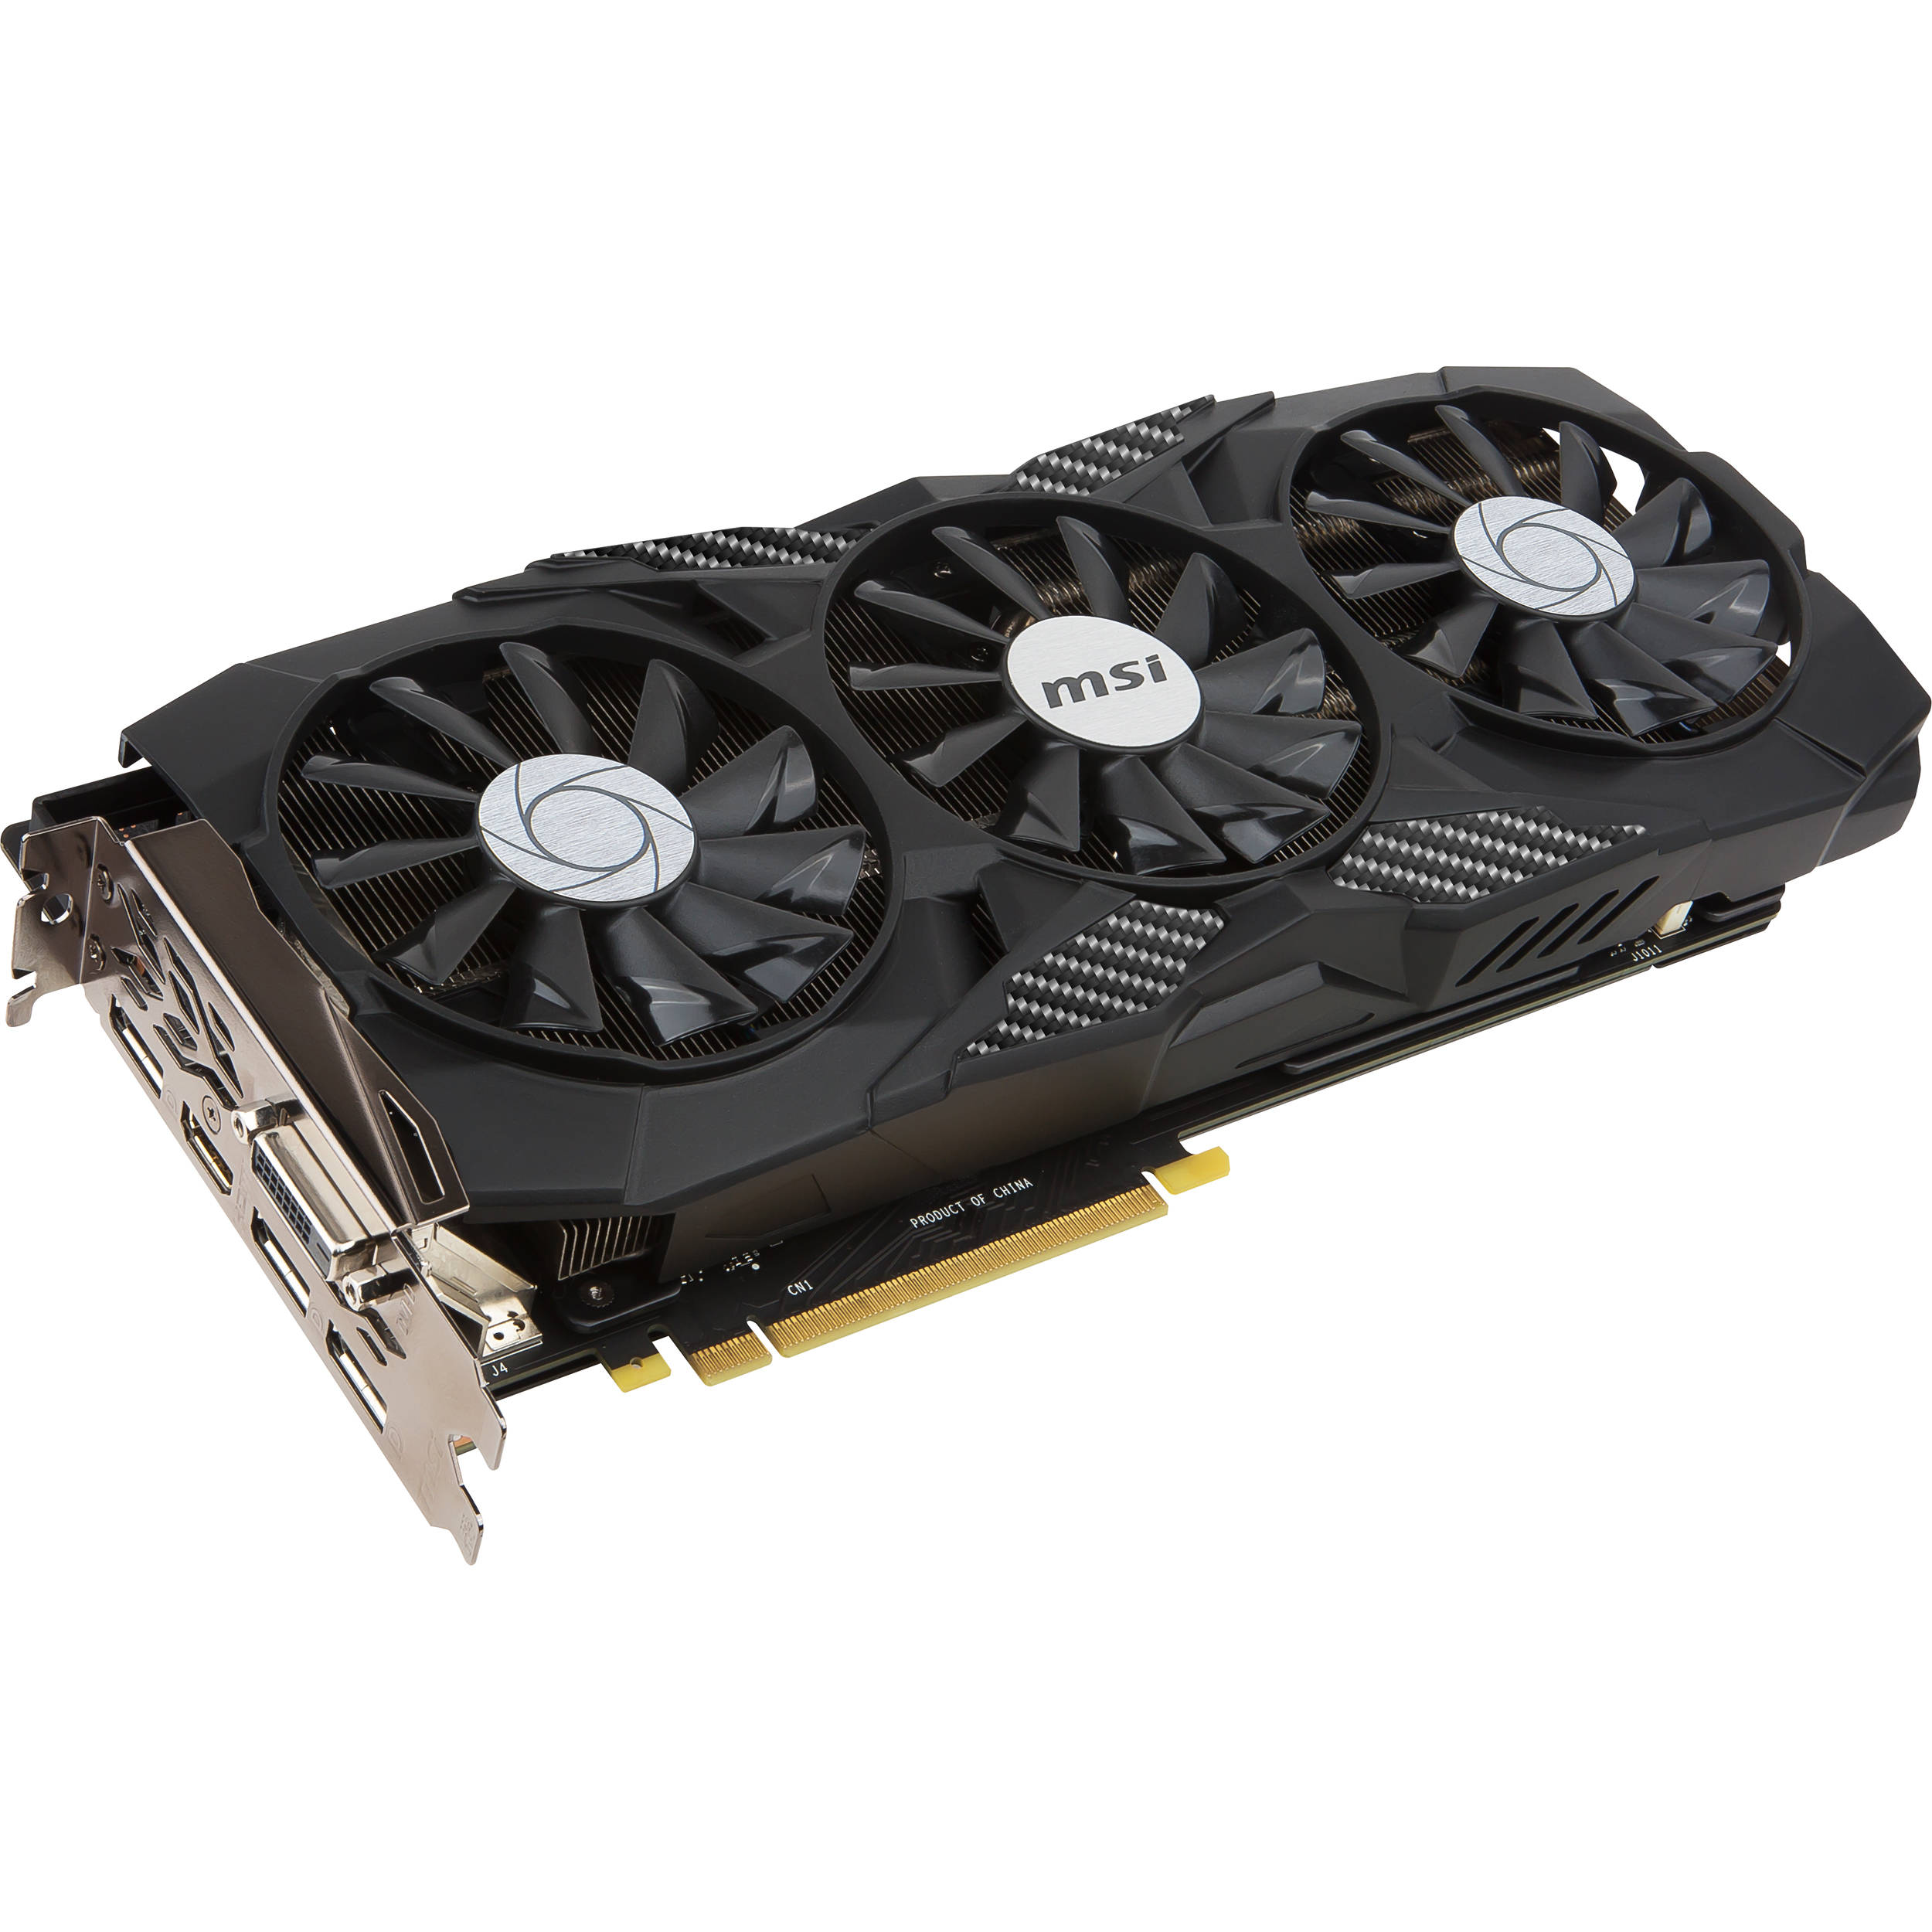 Image result for graphics card